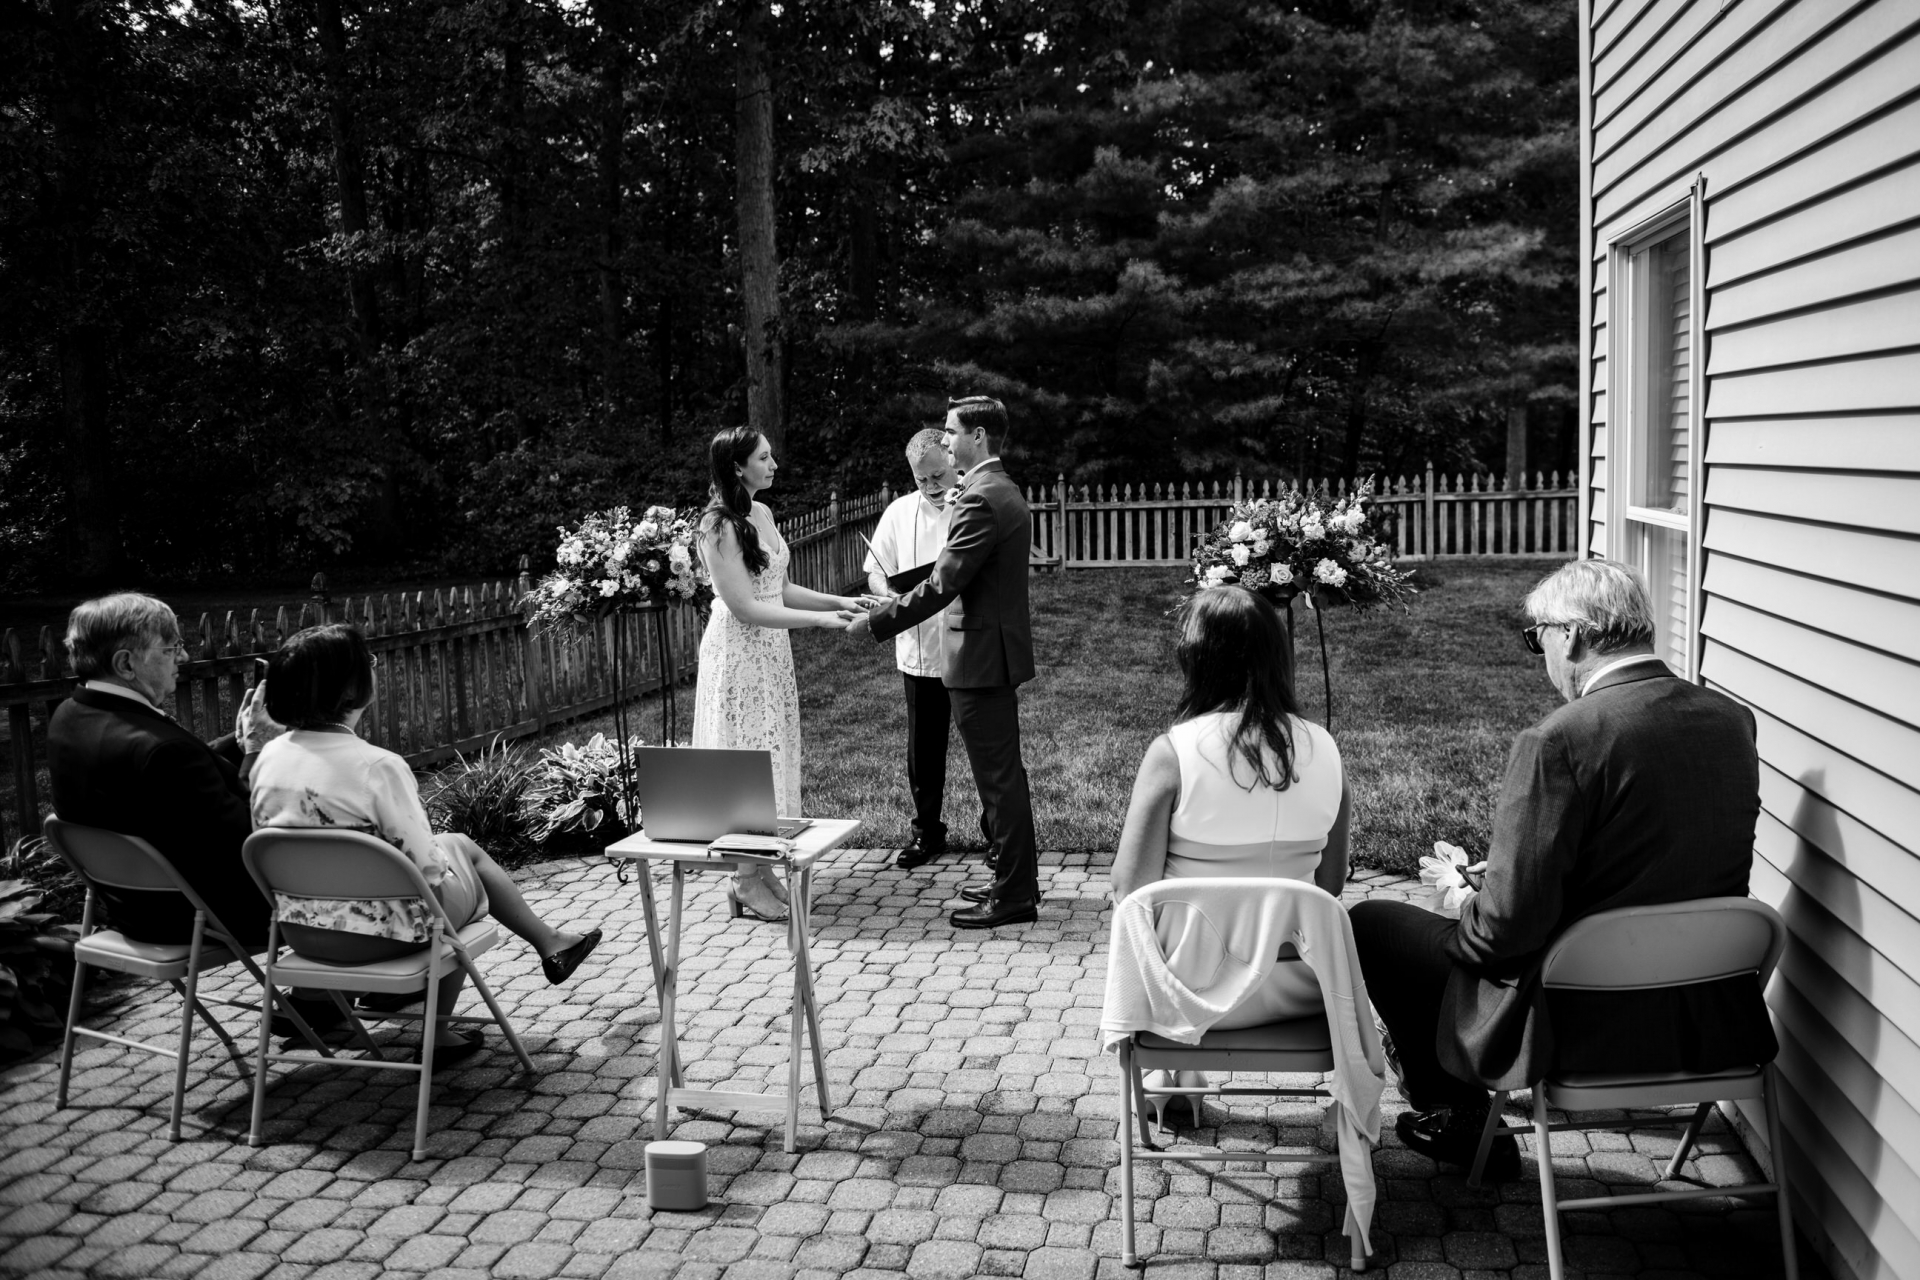 Backyard Elopement Picture from Reston, VA | The ceremony takes place outside in the backyard